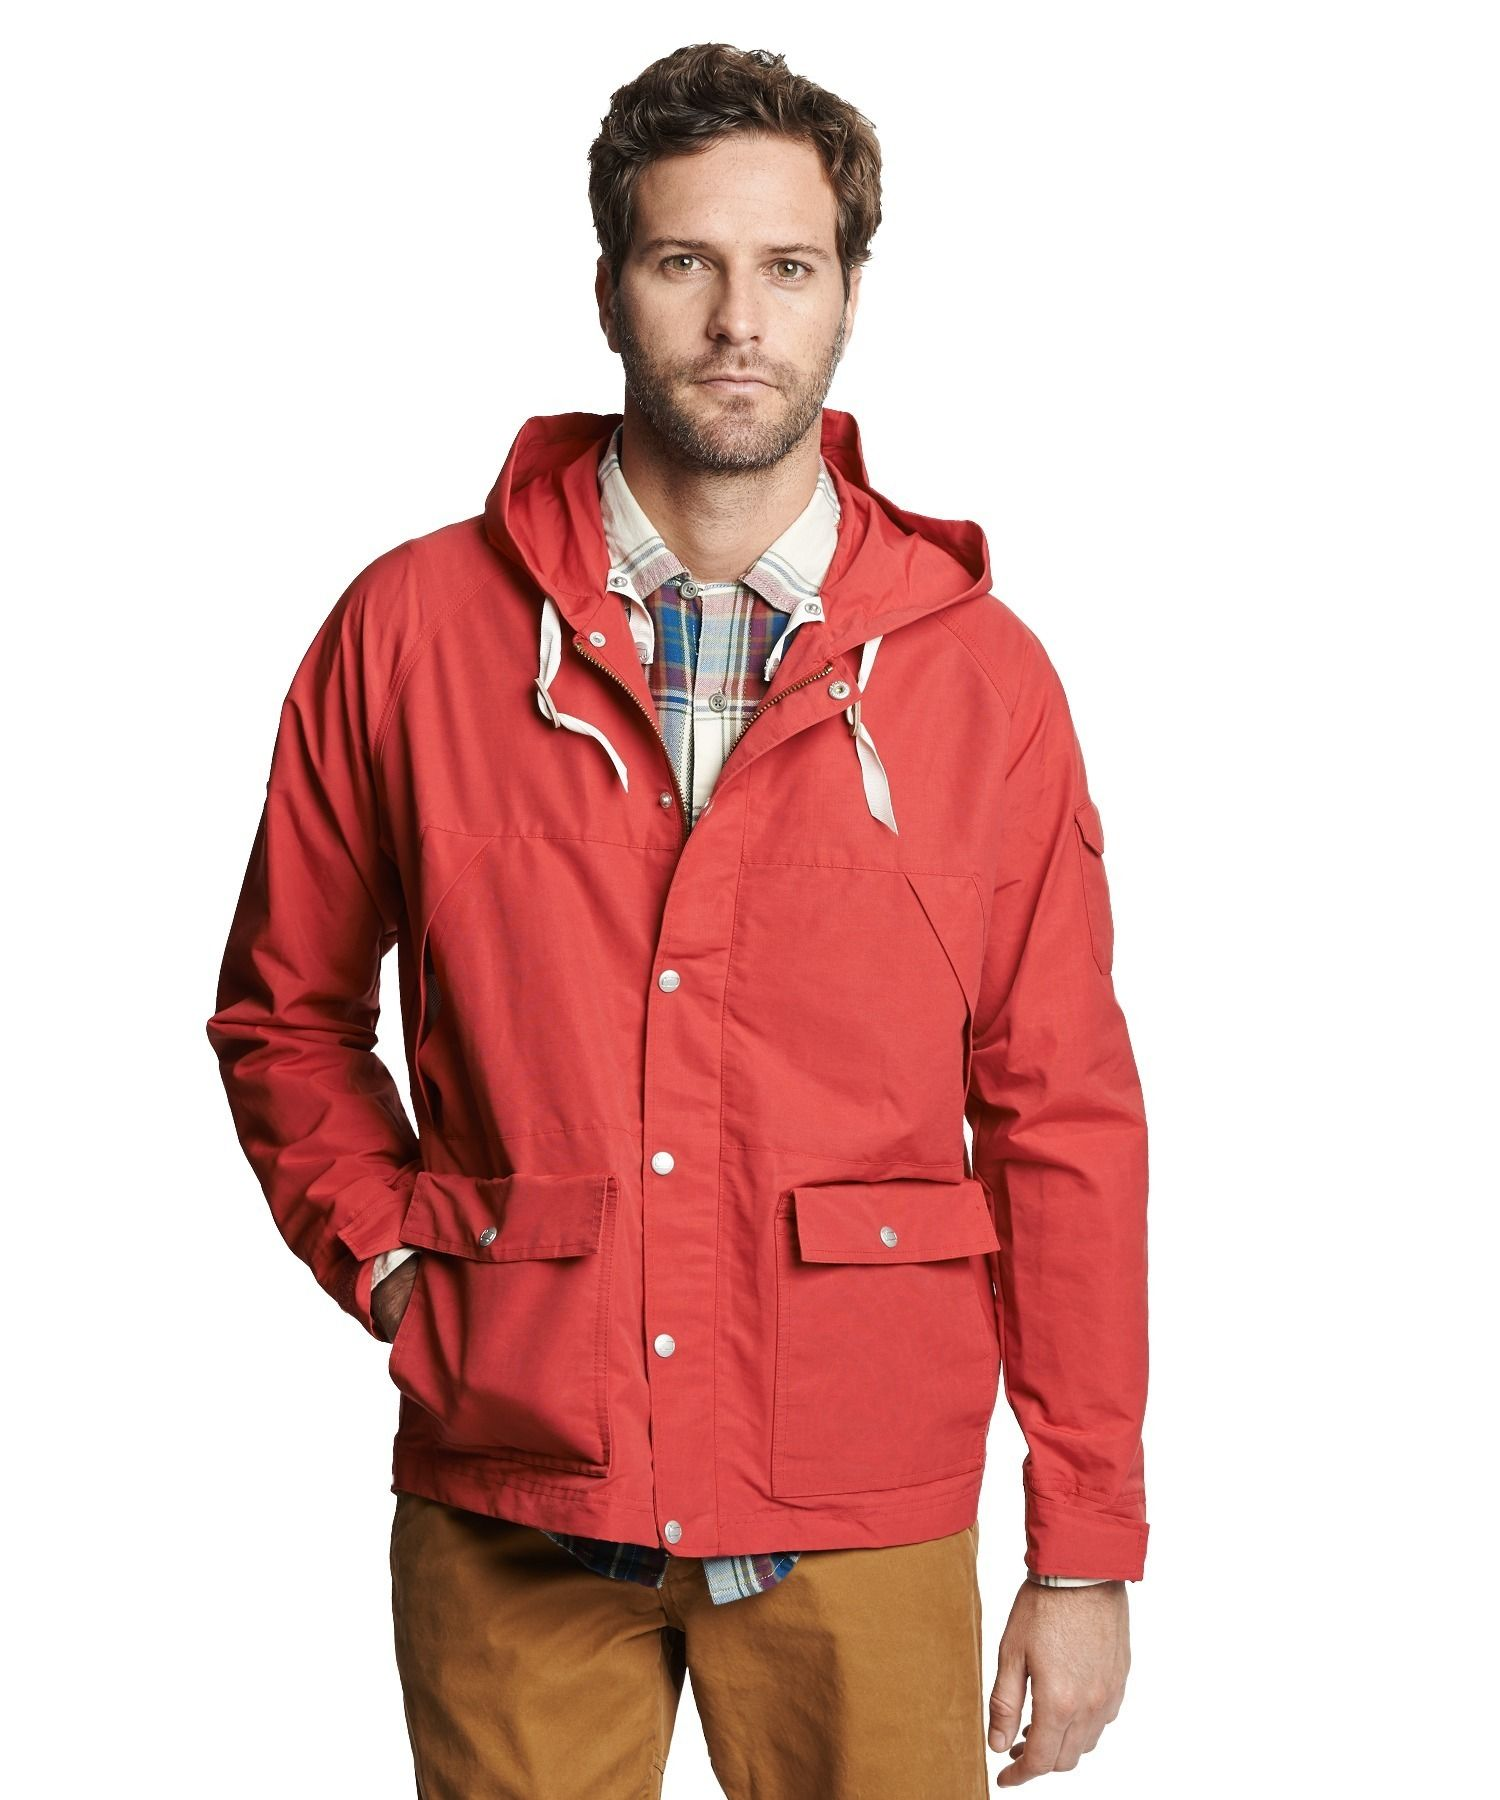 62e8170649e Men's Waxed Heritage Jacket- Woolrich | Style: Husband | Mens ...